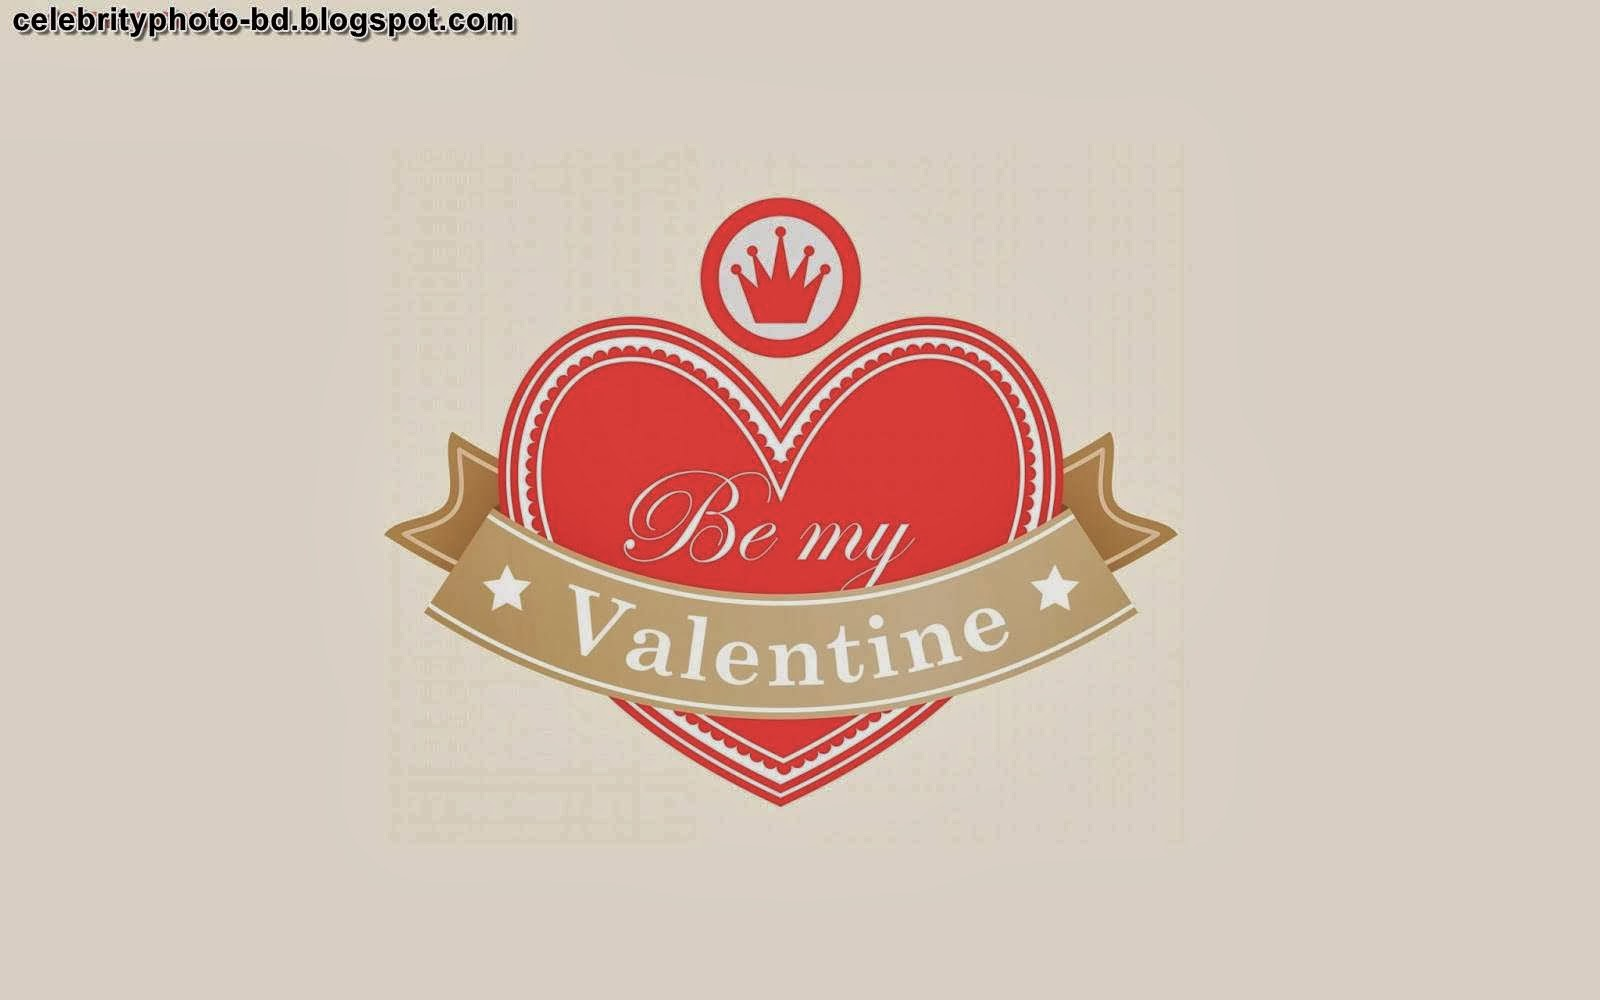 Valentines+Day+Latest+Lovely+Hearts+HD+Wallpapers+and+Wishes+Image+Cards+2014002